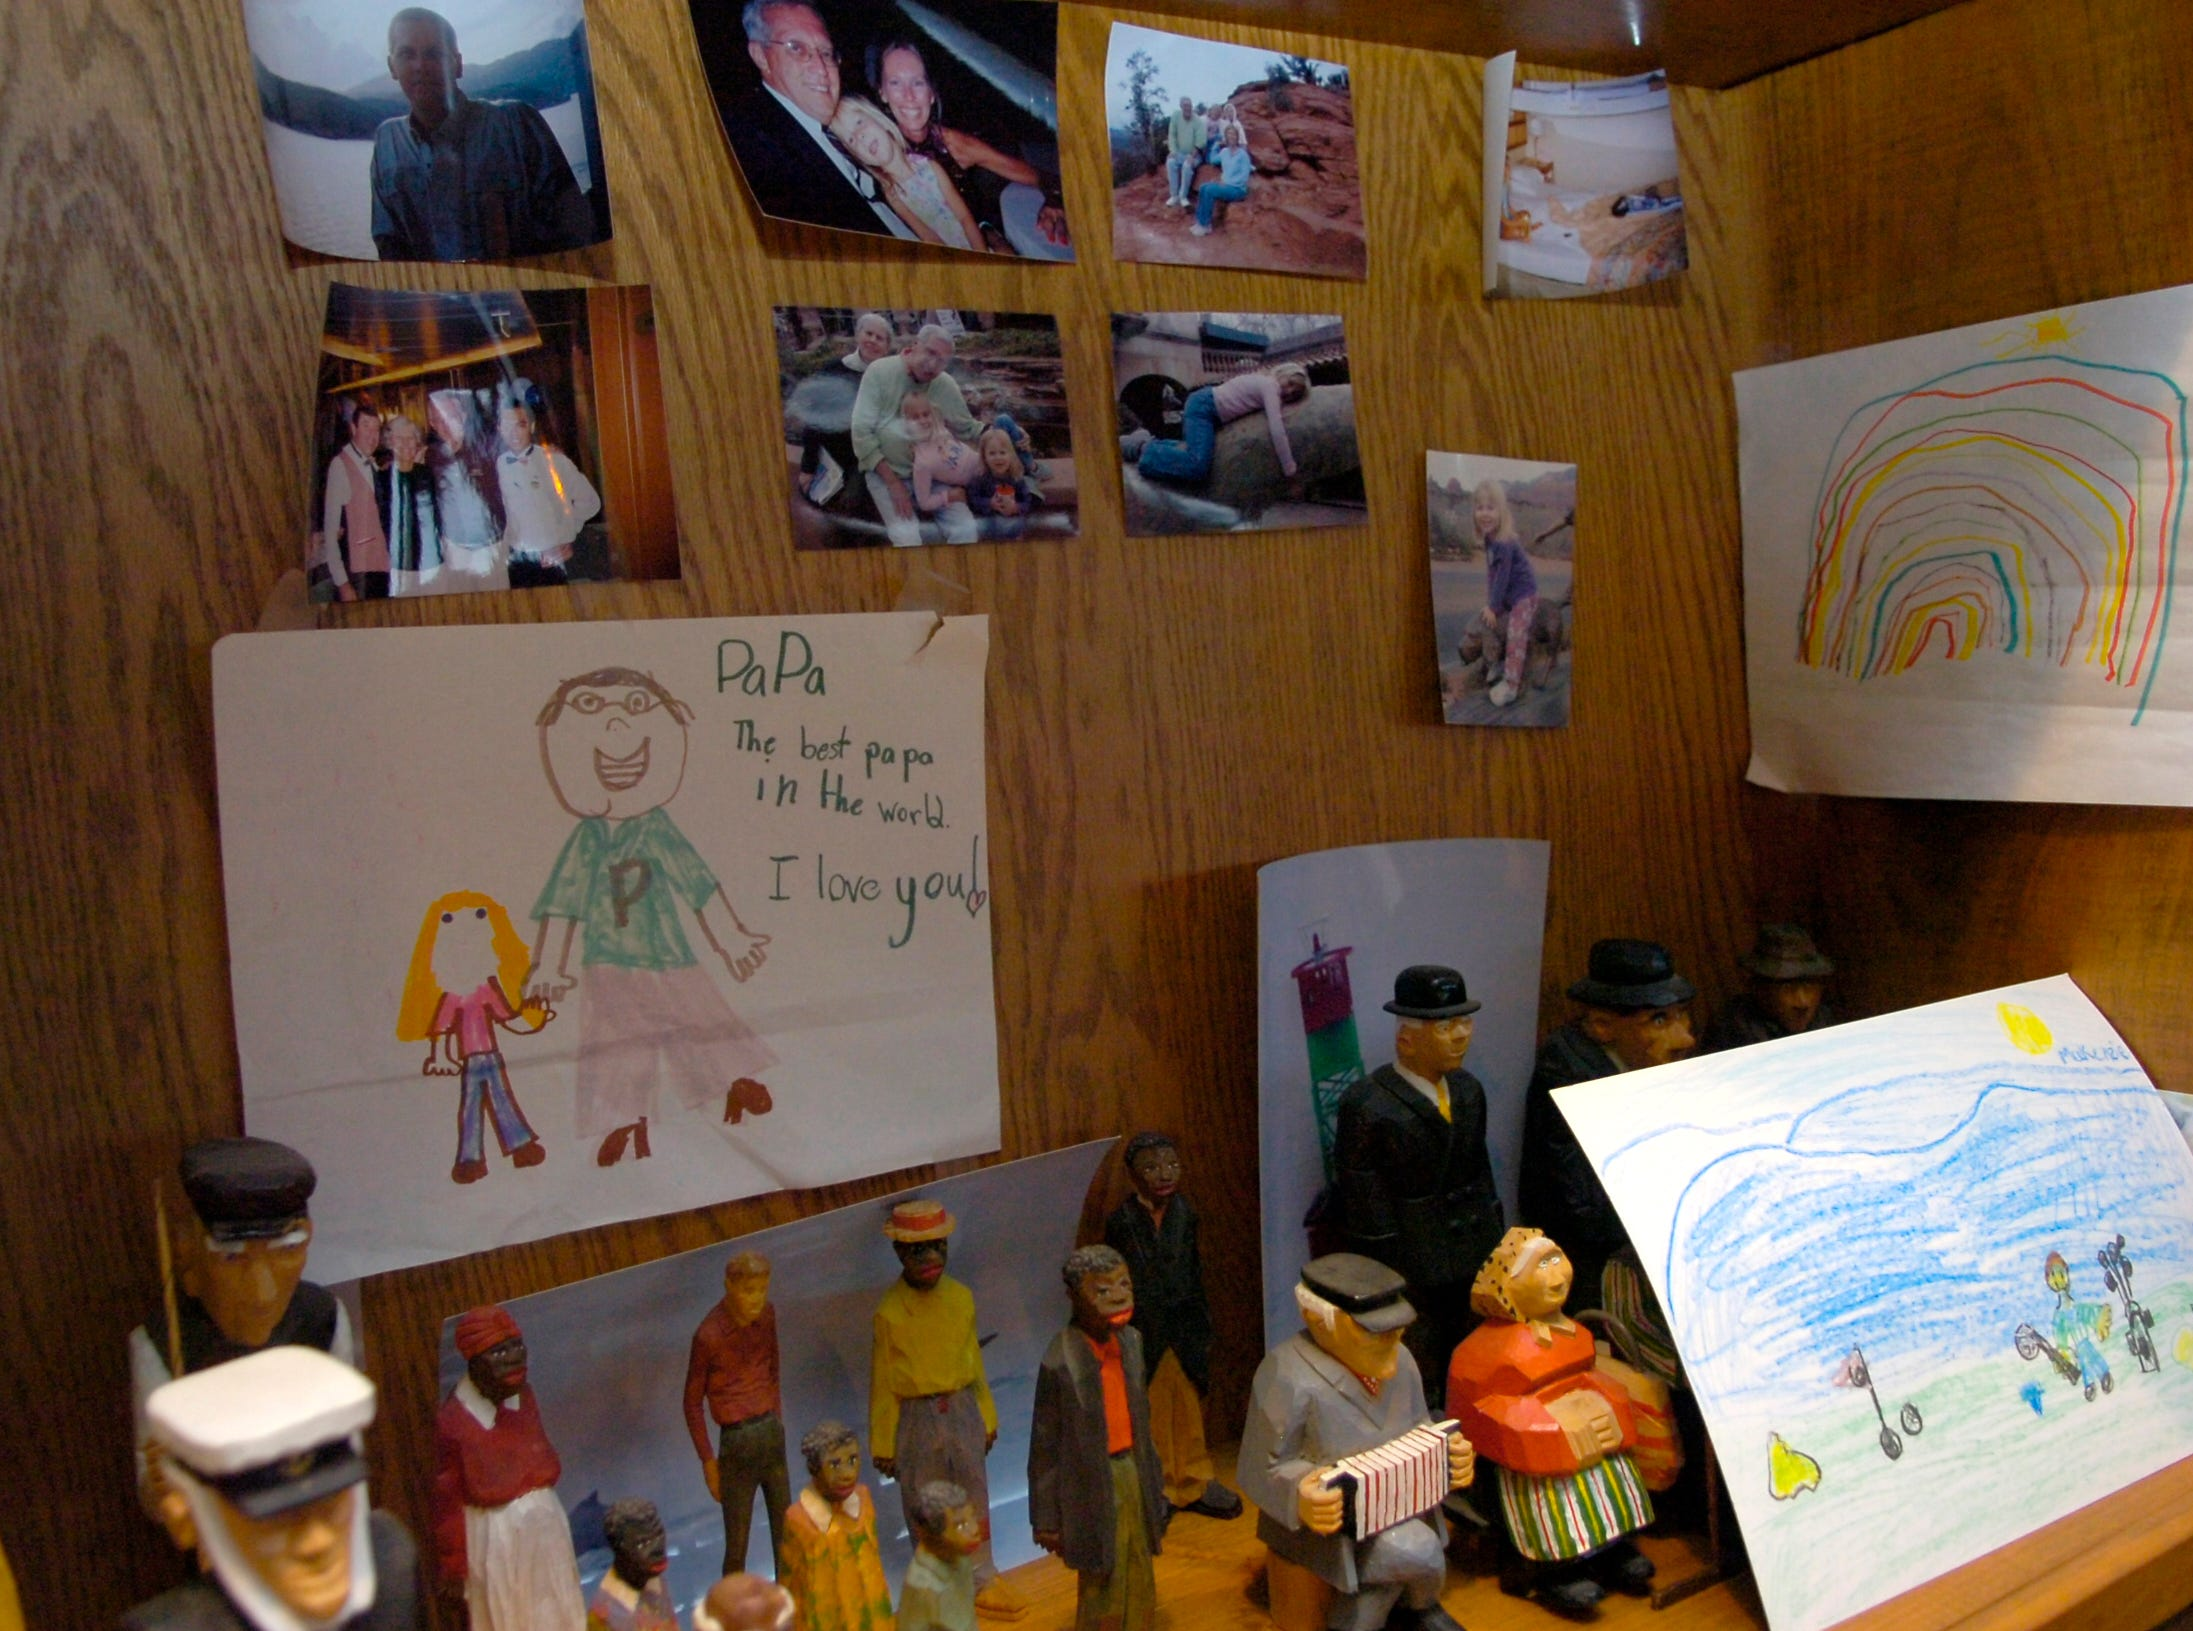 Photographs and drawings from his grandchildren hang in the office of former Tennessee Governor Don Sundquist at his home in Laurel Valley, located in Townsend, TN. Sundquist served as governor from 1995 to 2002.